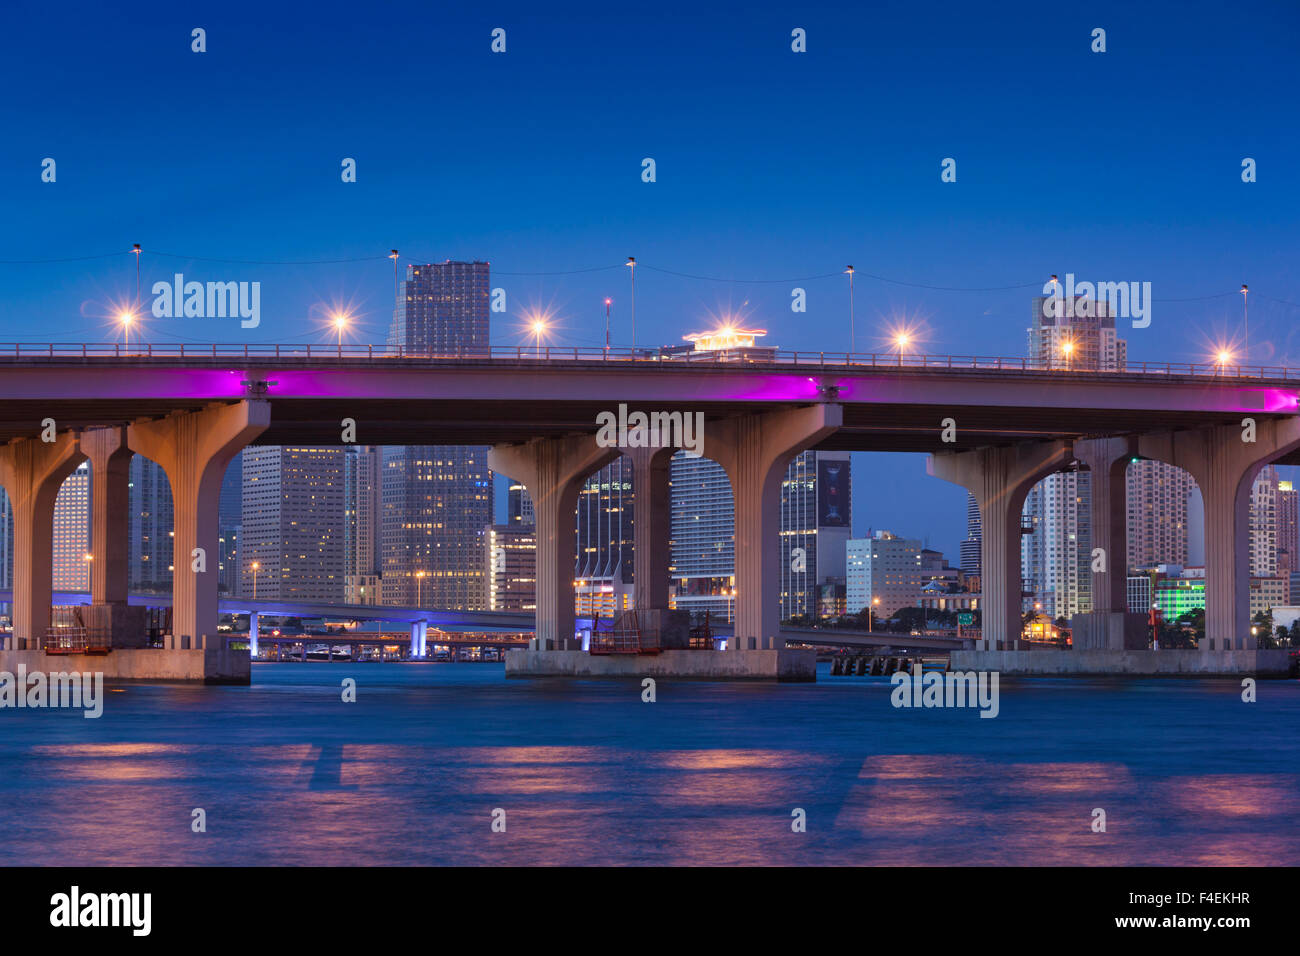 USA, Florida, Miami, city skyline from Venetian Causeway, dawn. - Stock Image